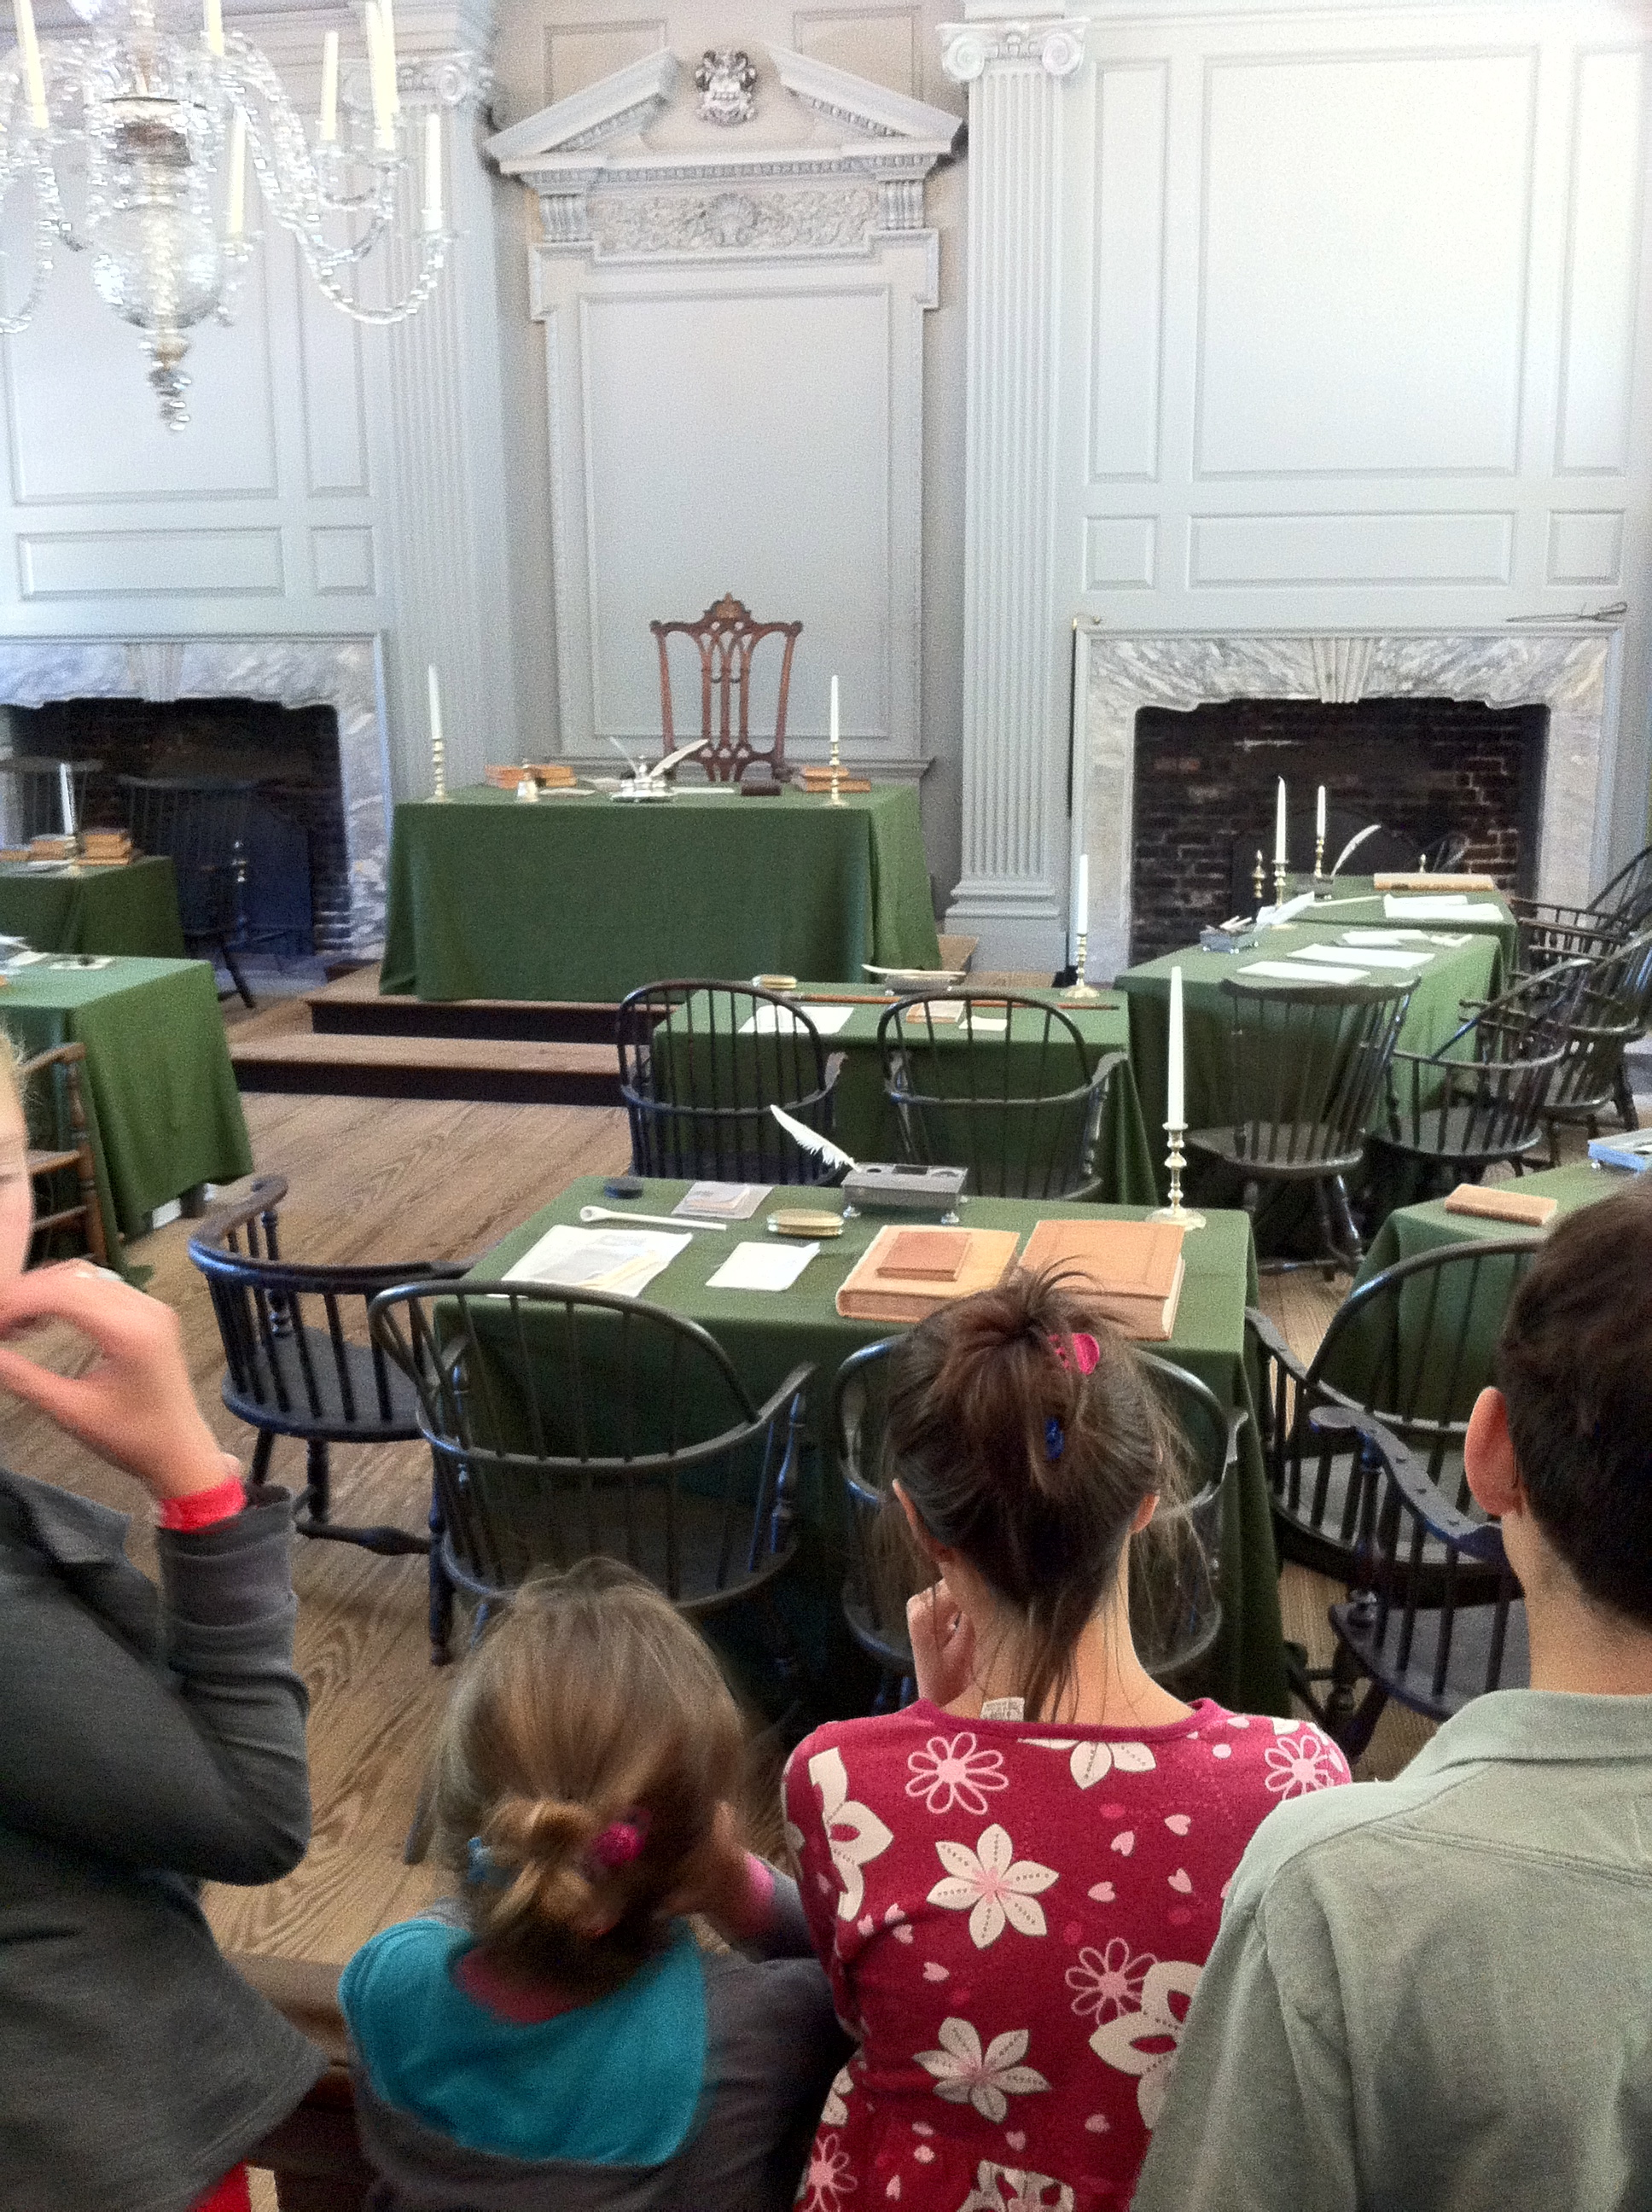 Where the Declaration of Independence was signed.